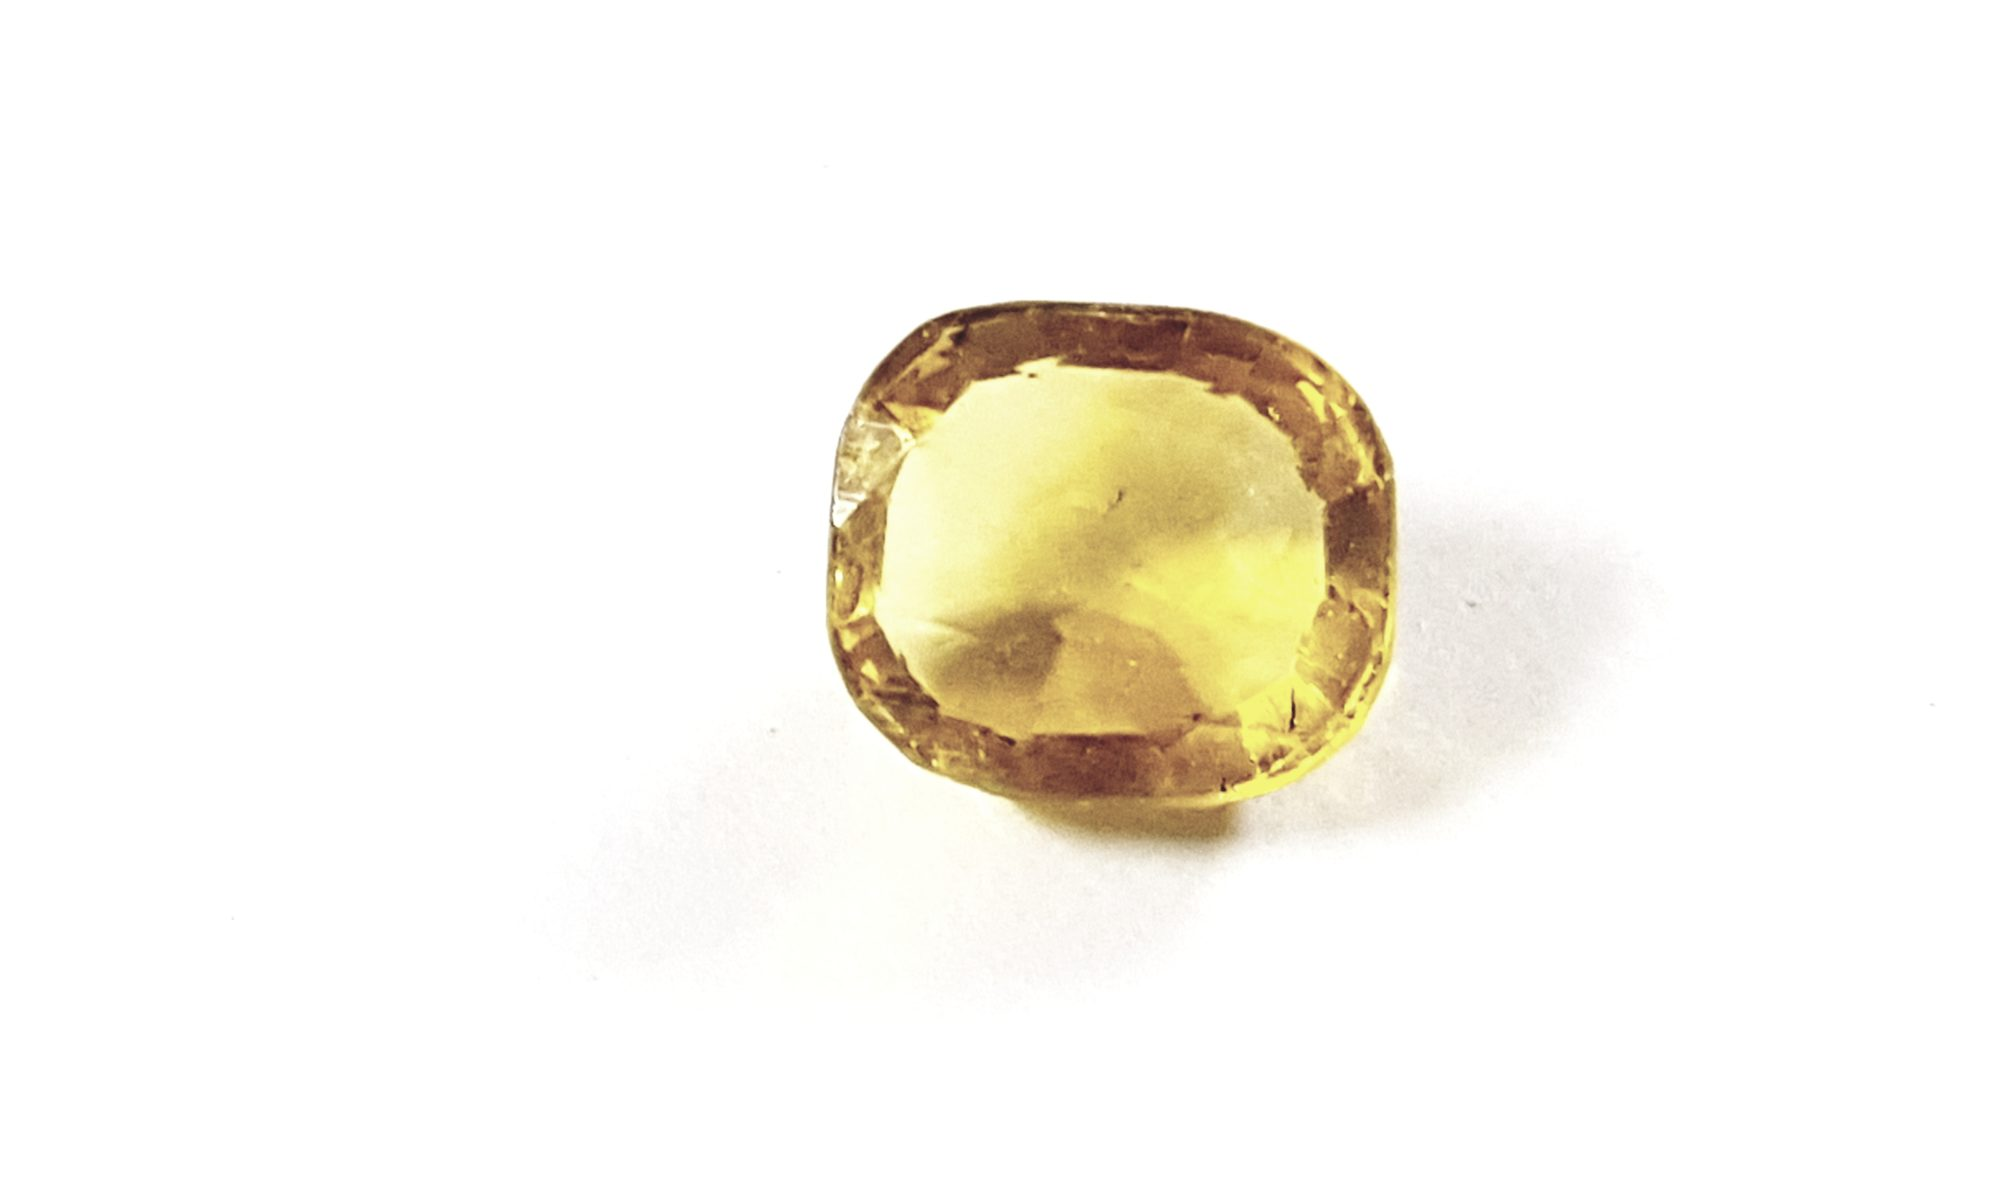 yellow flourspar or yellow florspar - rudraveda.com (17)